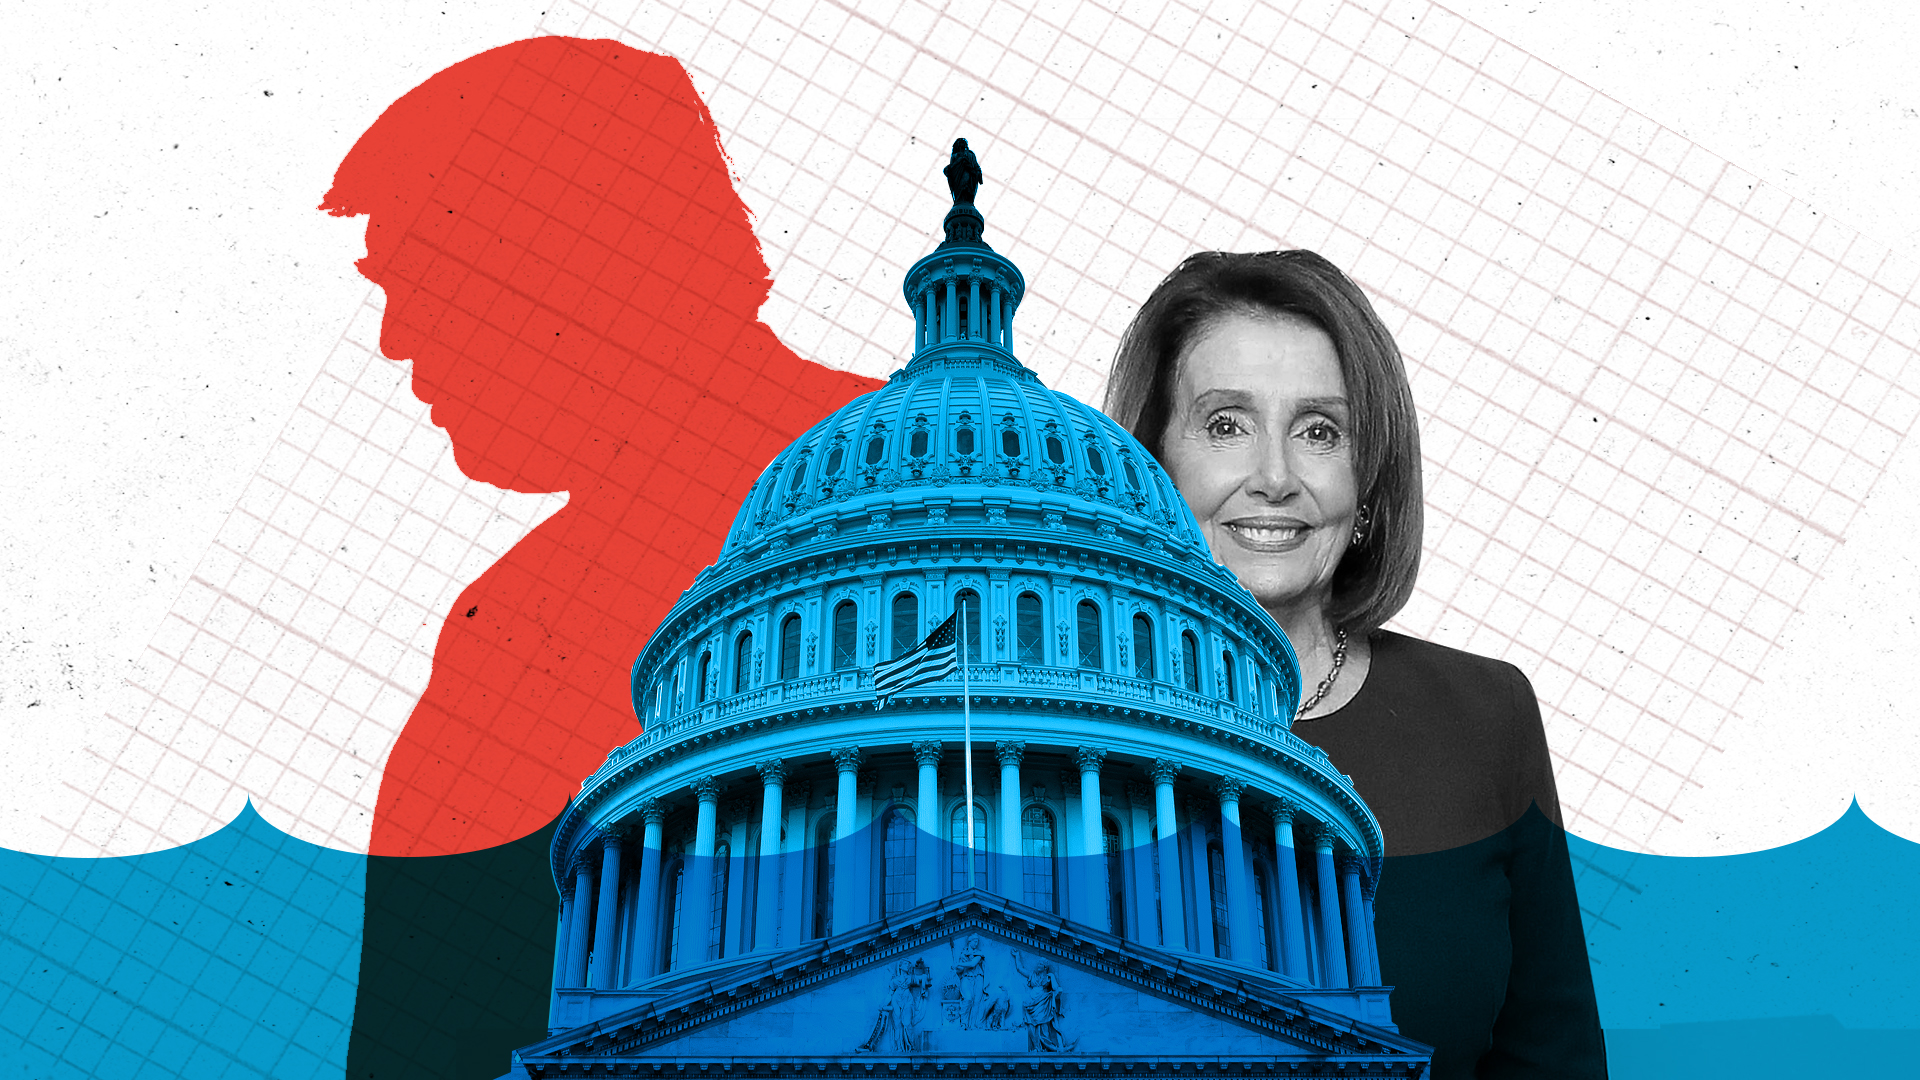 It's official: Democrats will control the House